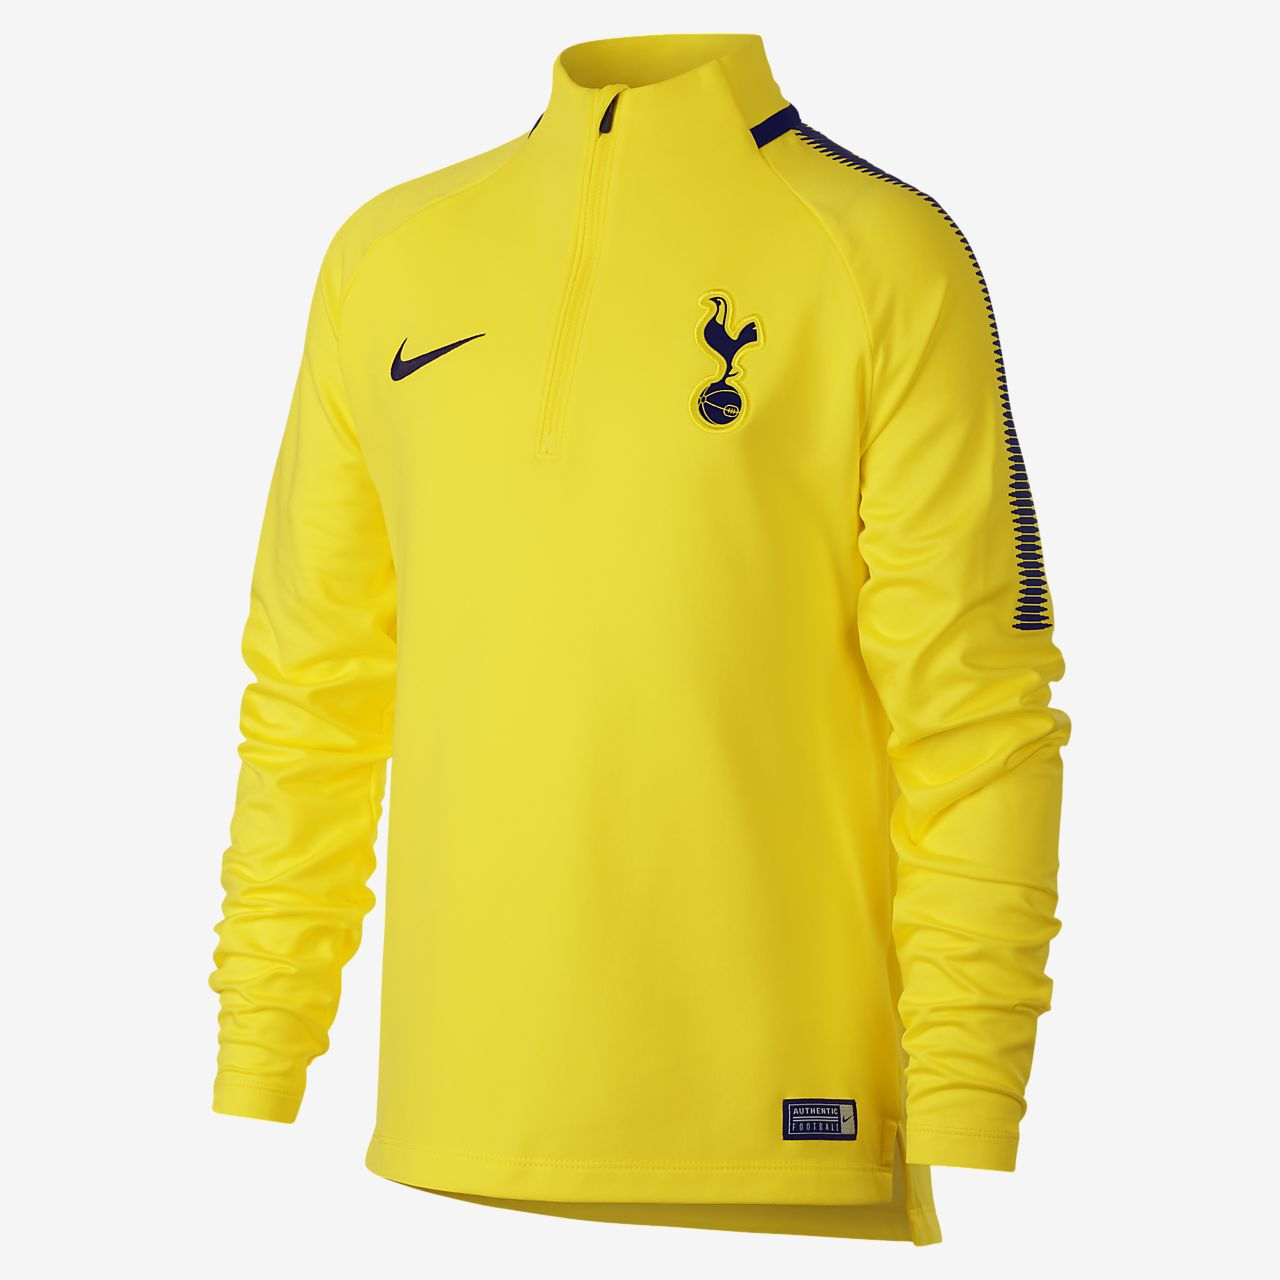 ac7f5d3fe2d0 Tottenham Hotspur Dri-FIT Squad Drill Older Kids  Football Top. Nike ...